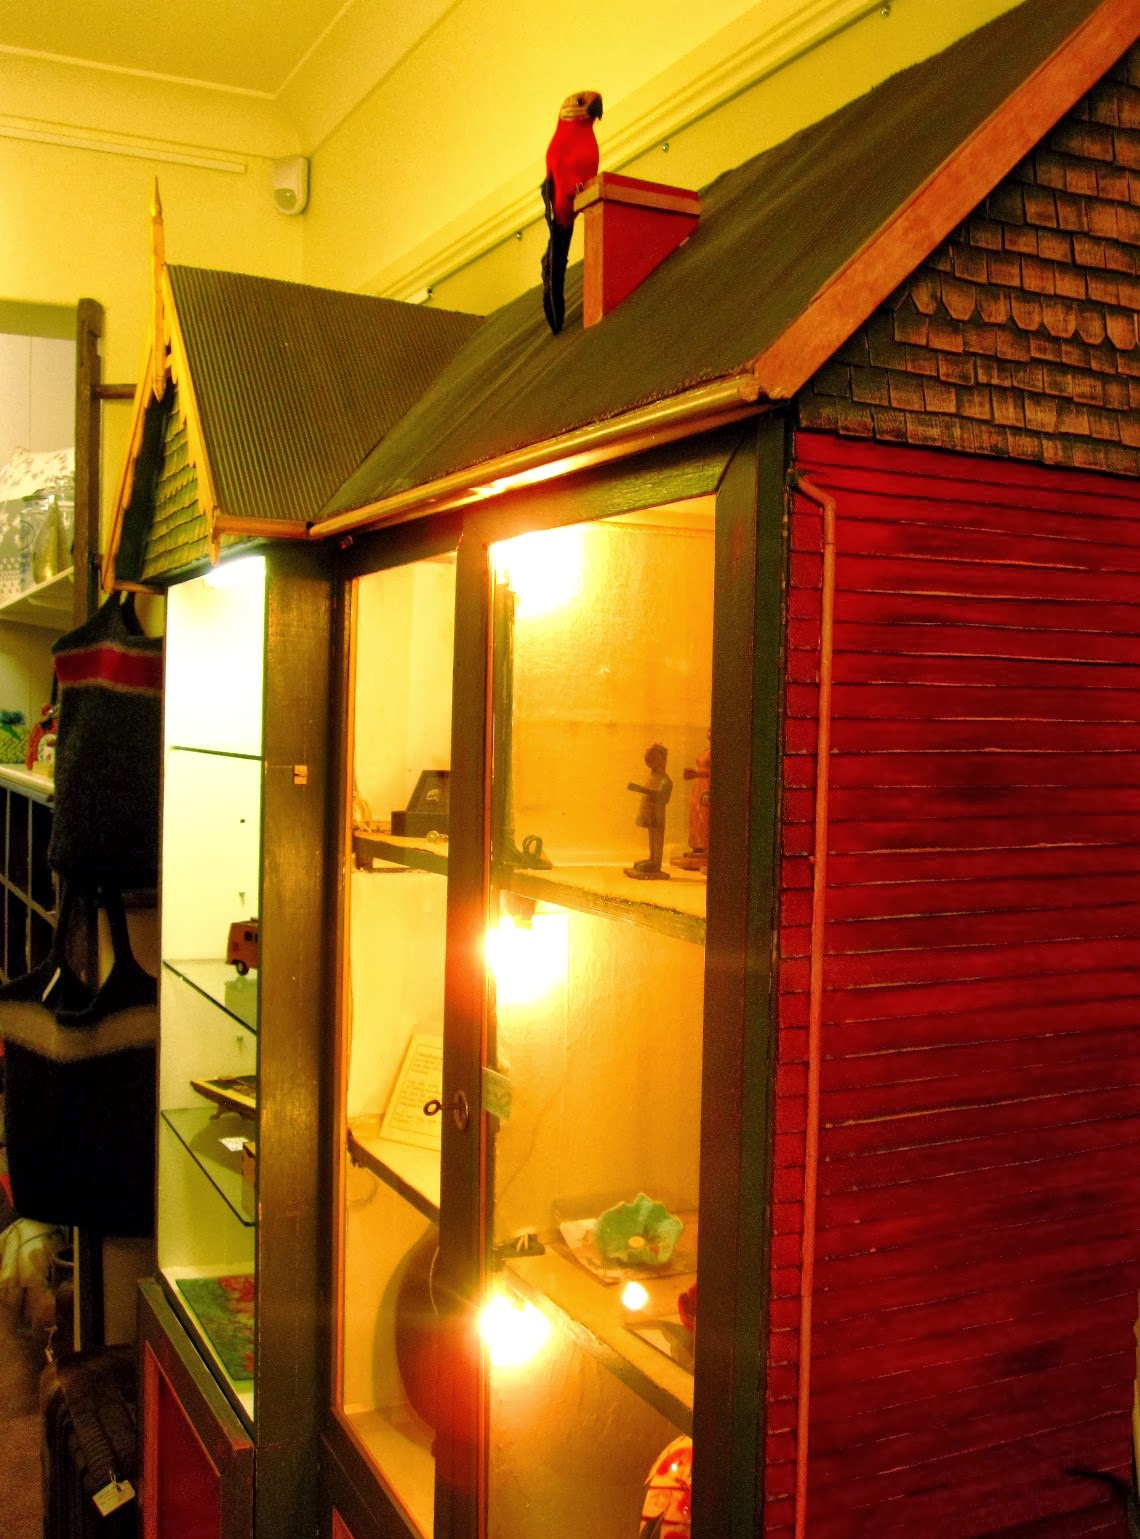 Display cabinet in the shape of a large dolls house